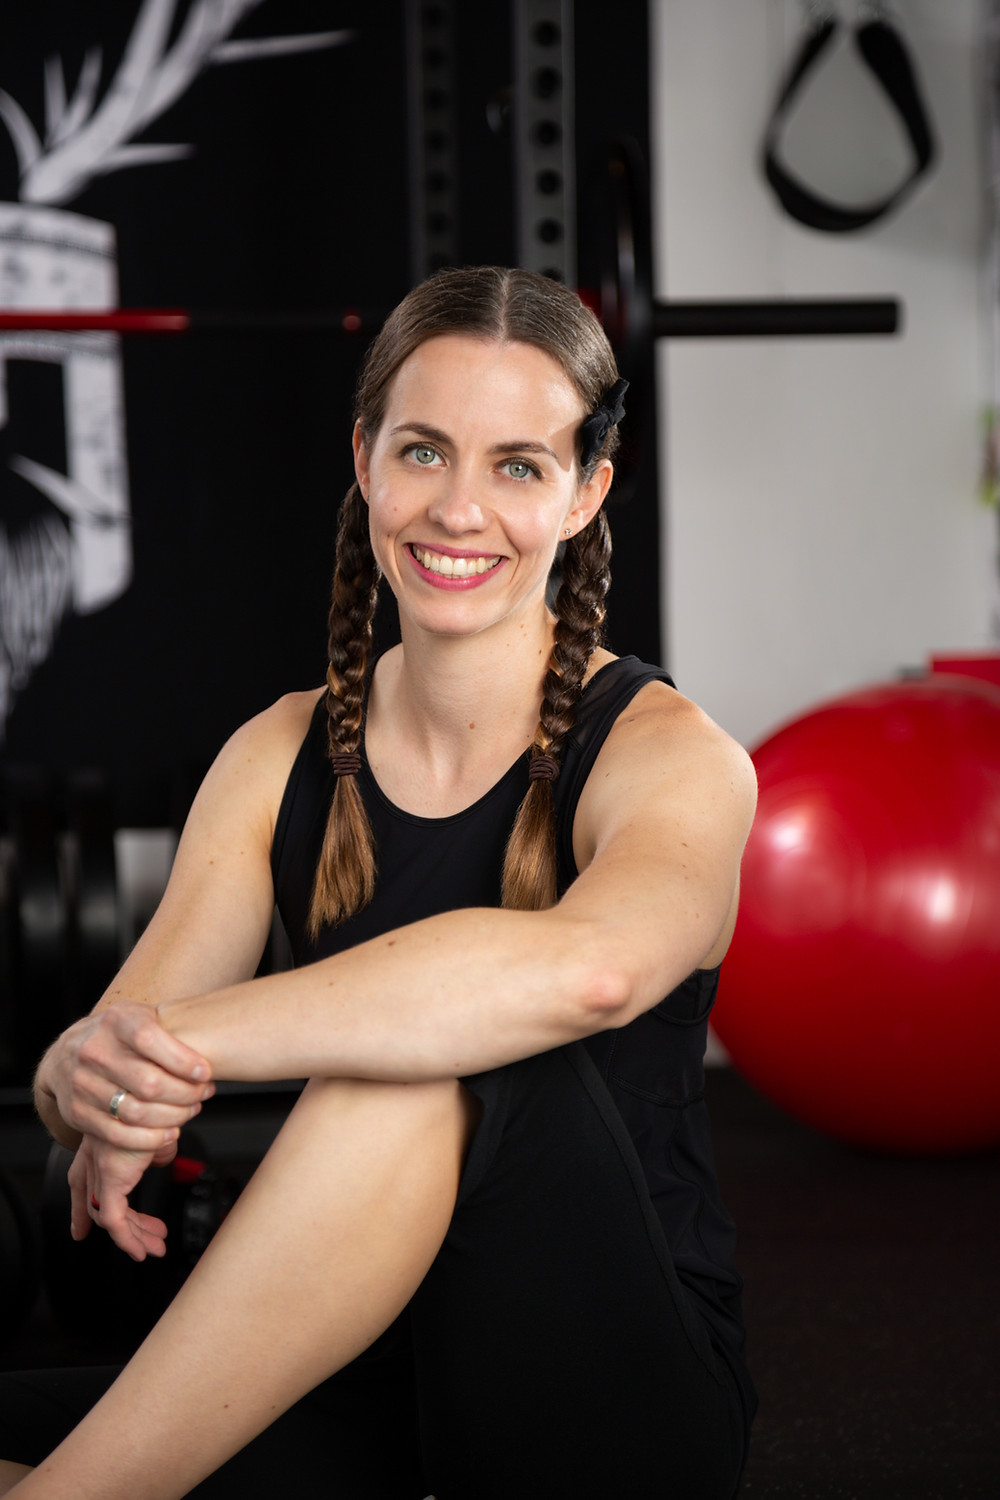 Fitness and nutrition coach Karina Inkster